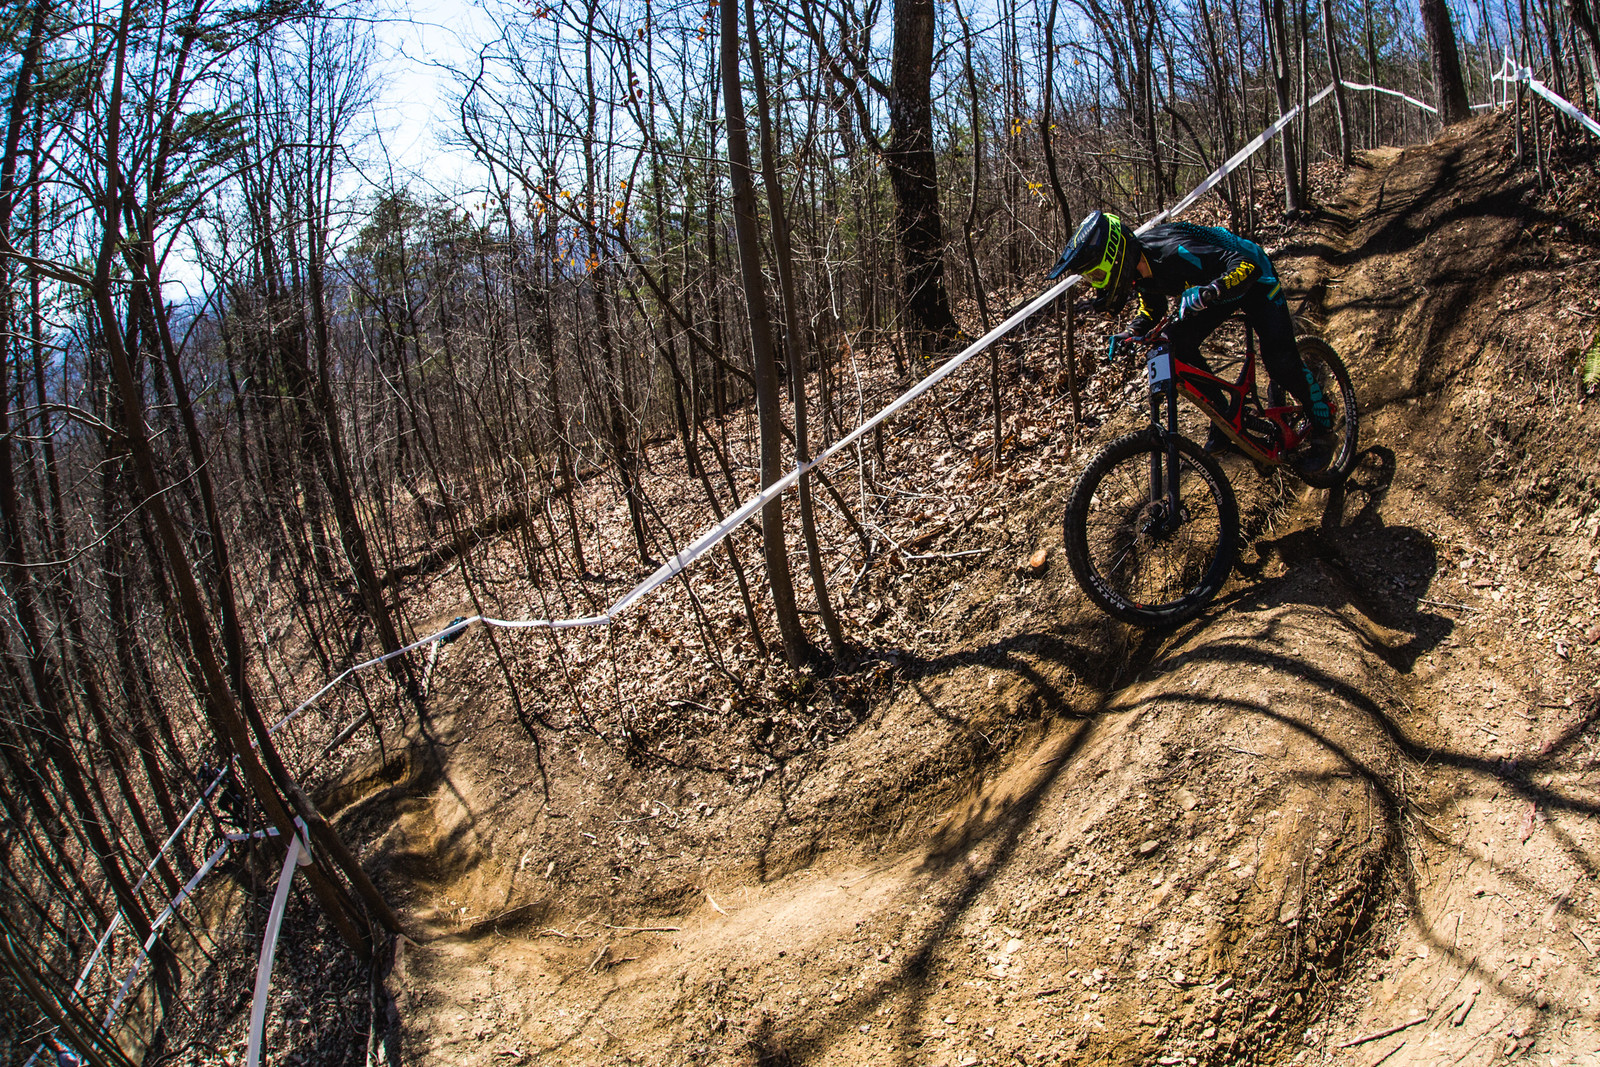 a4a098830d3 Drop Out Mountain Biking Trail Windrock Mountain Bike: 2017 Pro GRT Windrock,  Tennessee DH